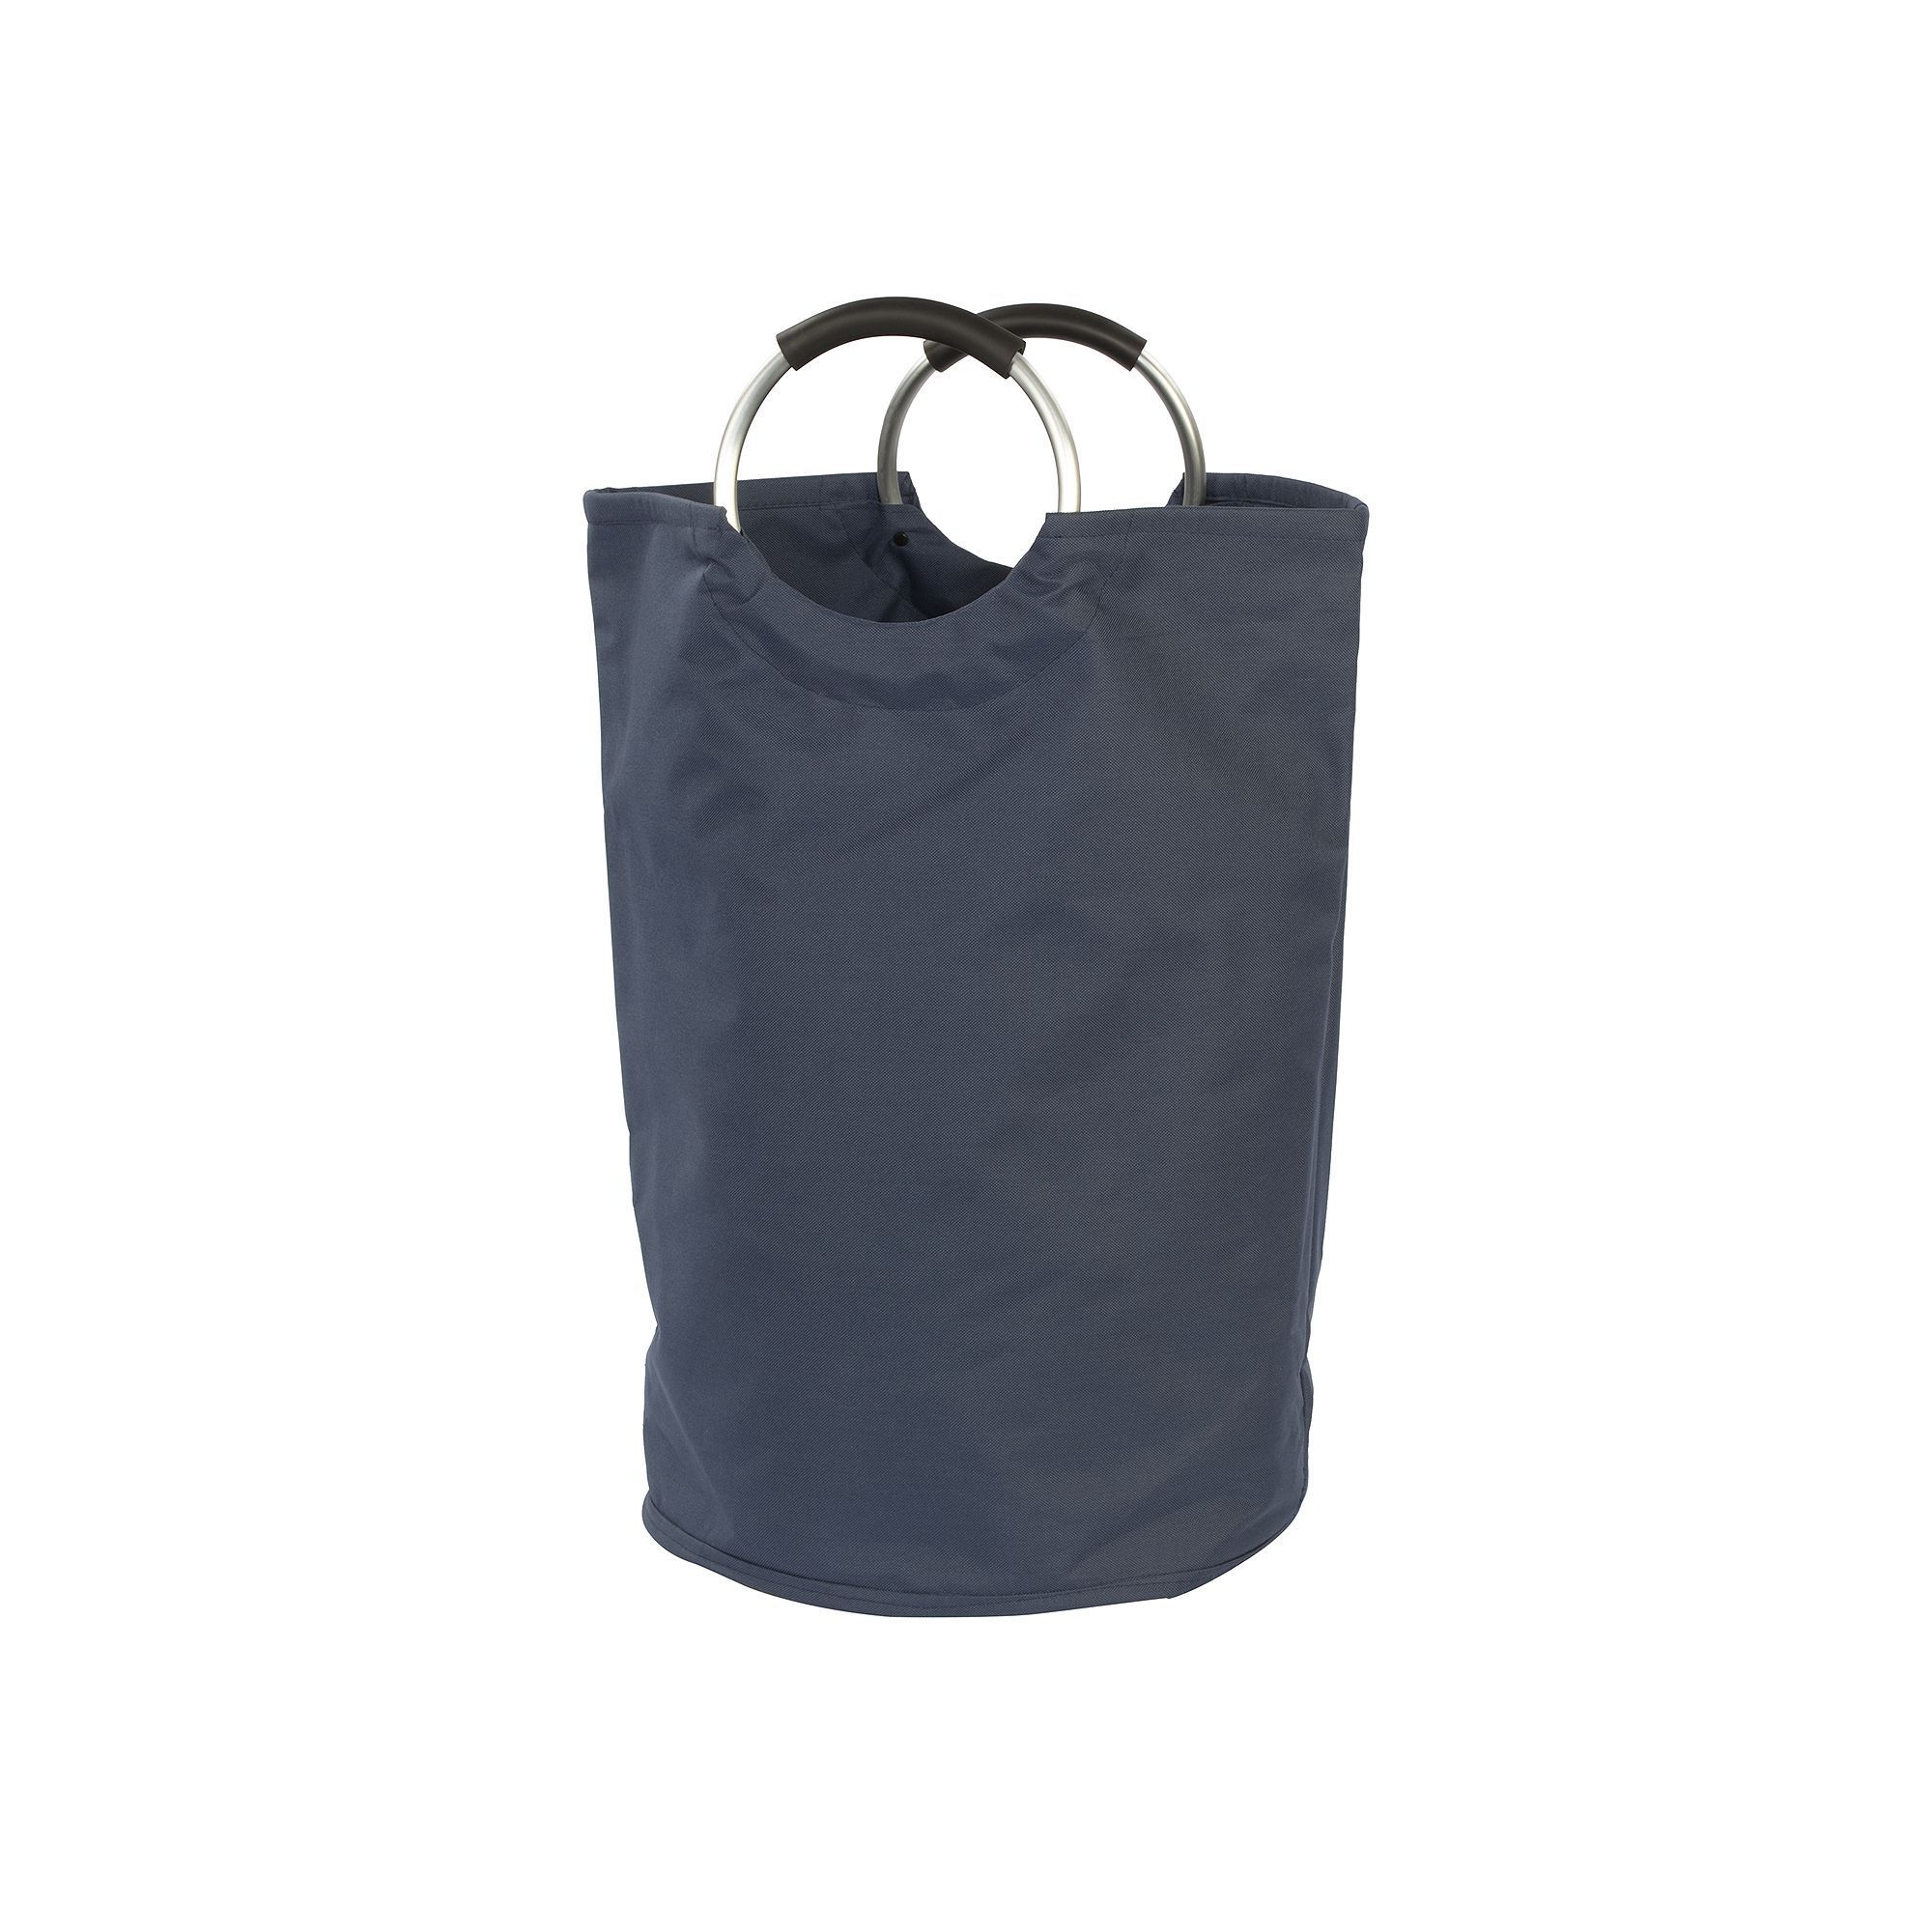 Creative Ware Home The Bag Laundry Hamper Products Laundry